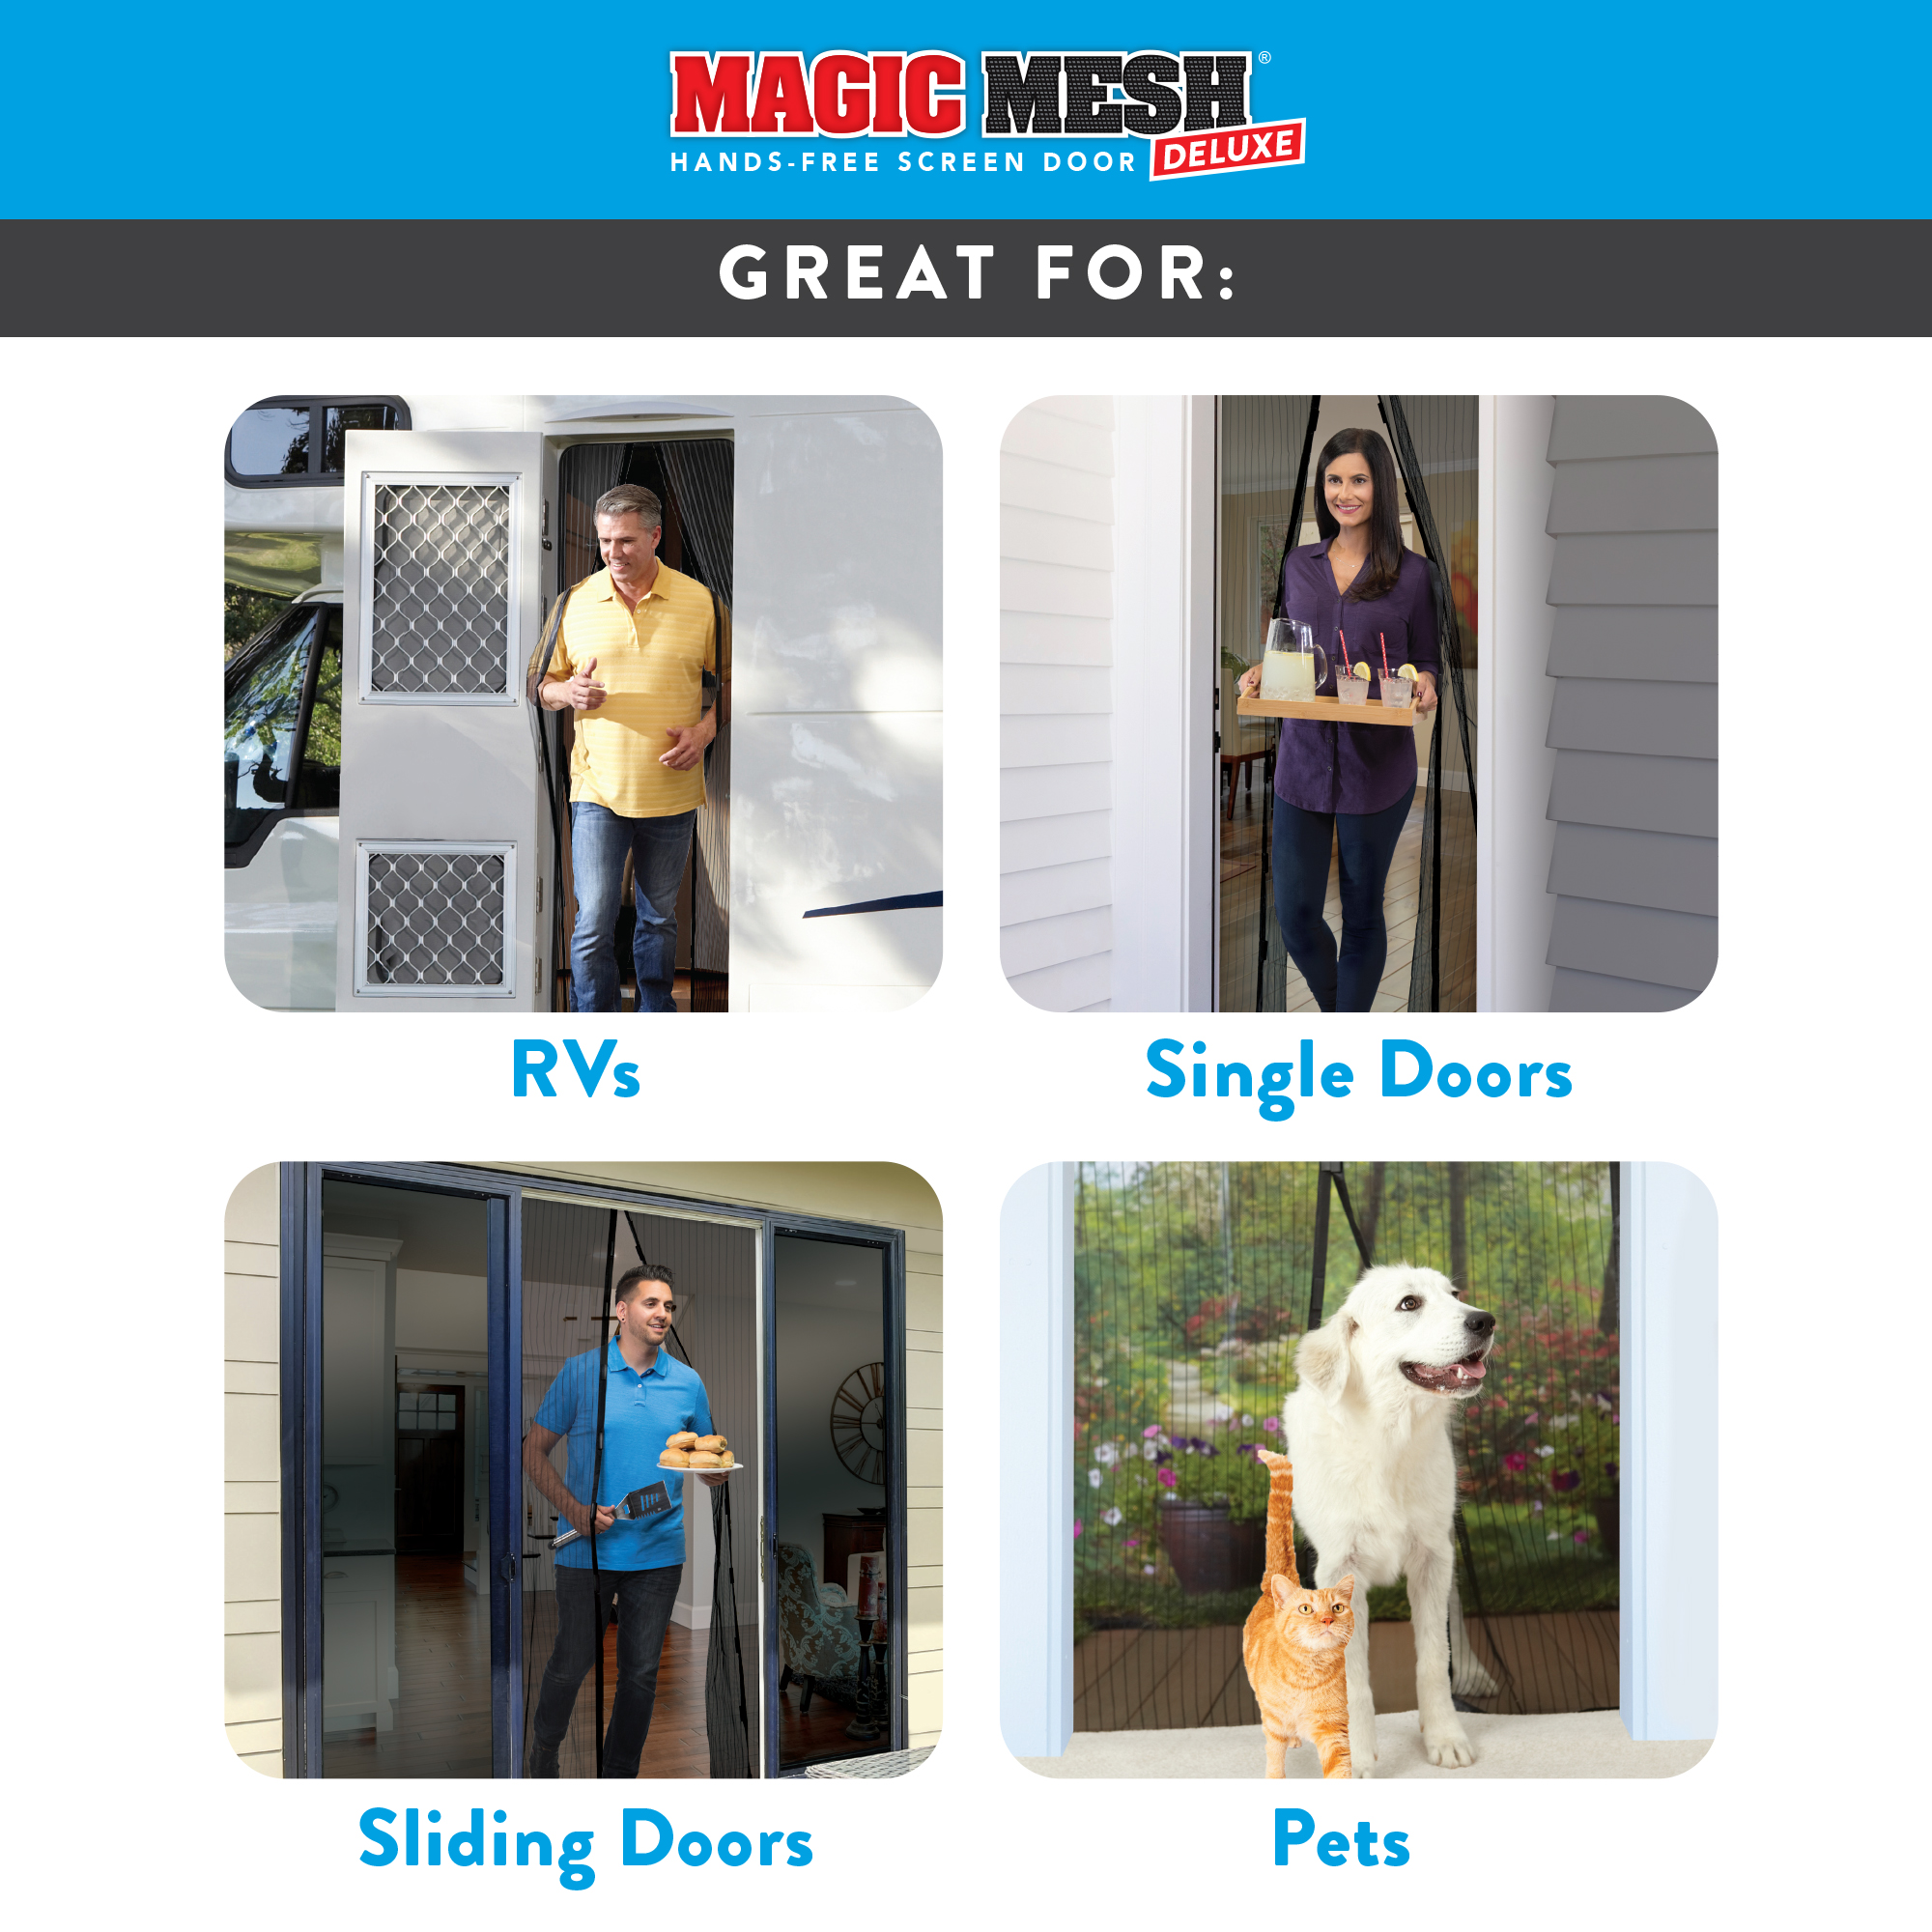 Storm Doors Edmonton Magic Mesh Deluxe Magnetic Hands Free Screen Door Cover As Seen On Tv